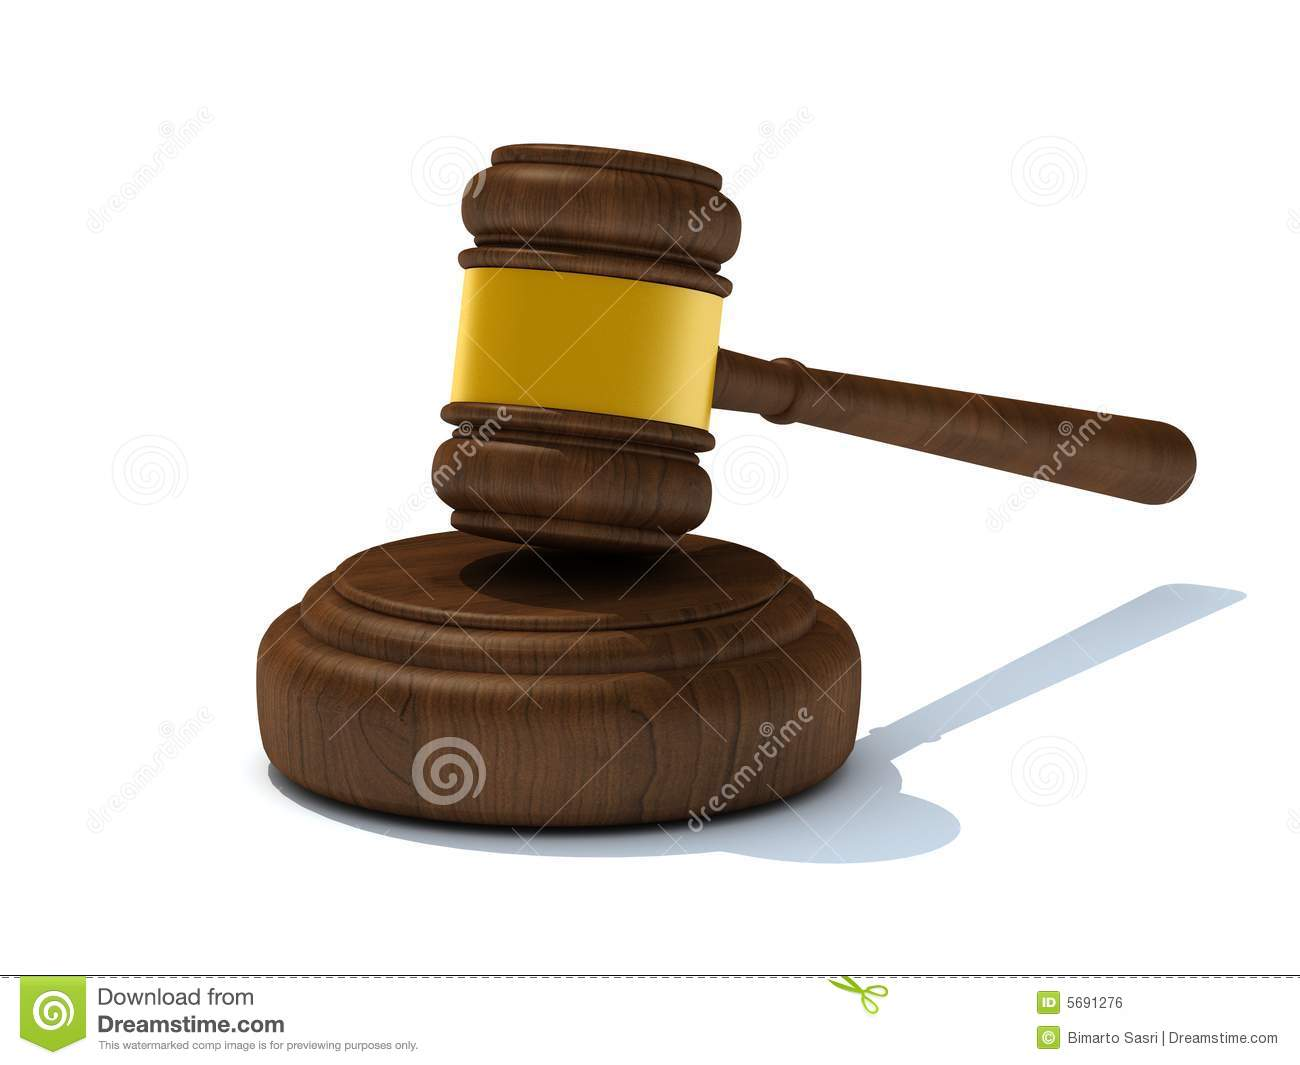 malet of judge royalty free stock image image 5691276 free animated clipart for powerpoint free animated clipart for emails